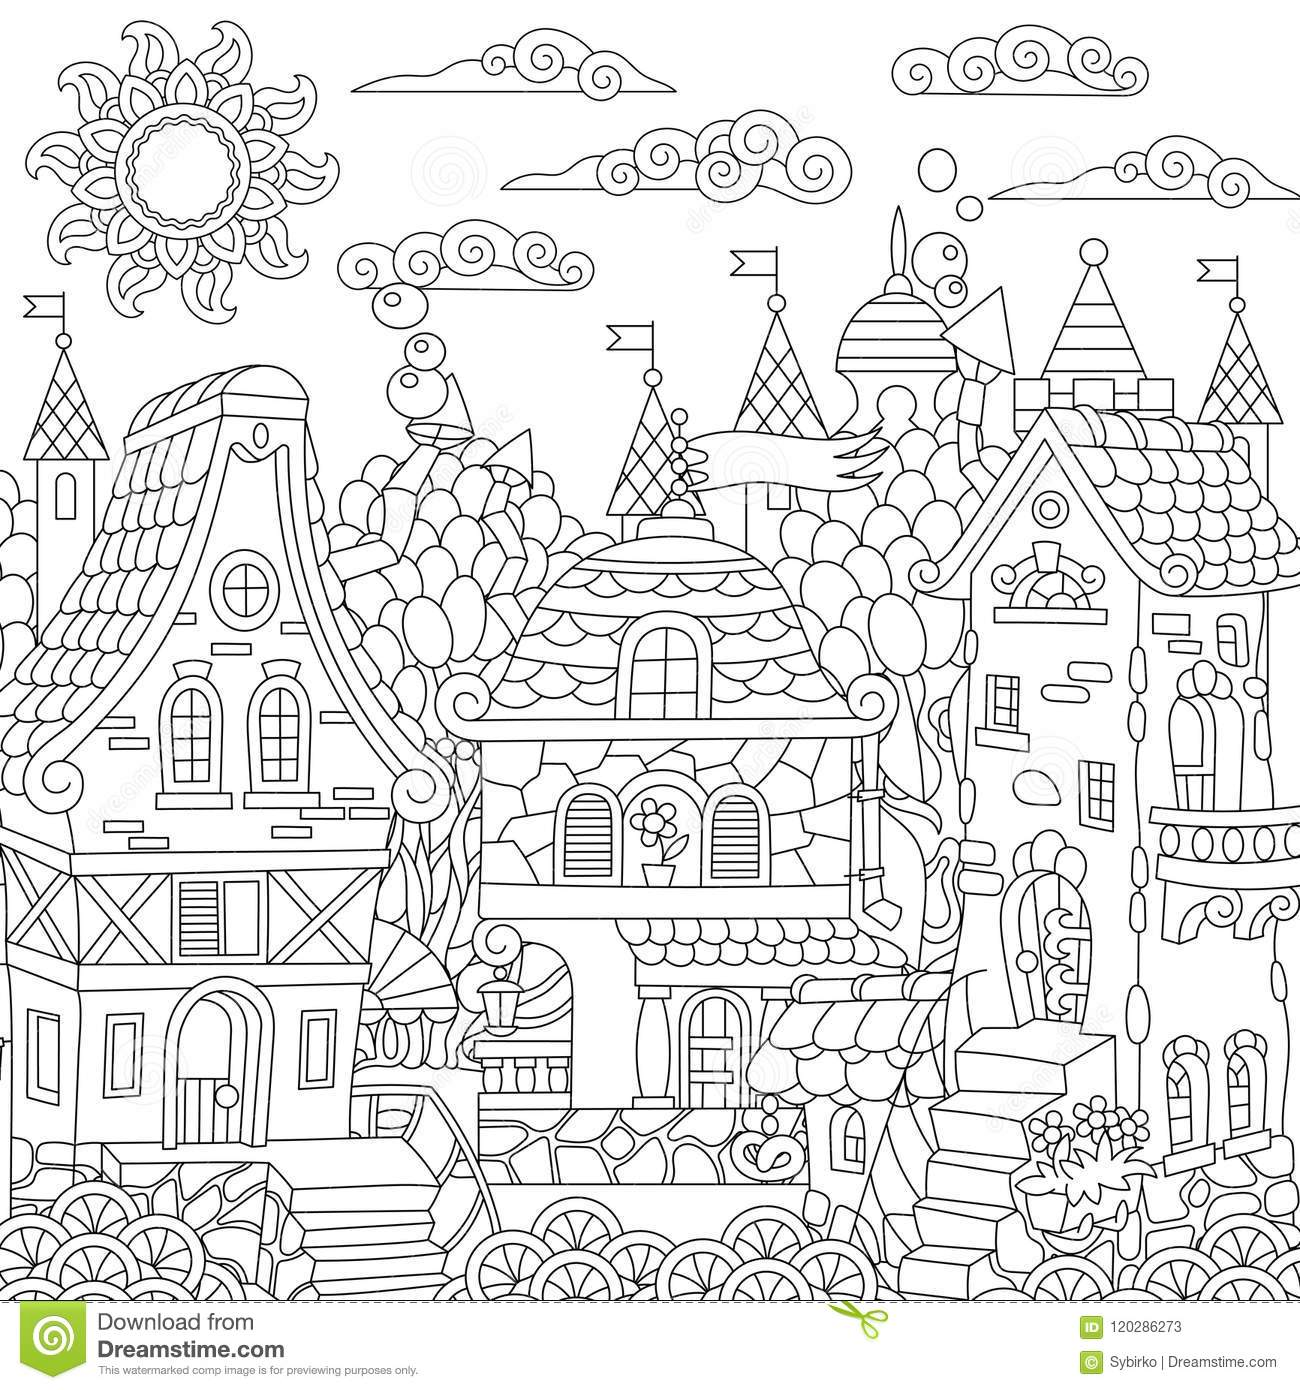 Zentangle fairy tale town stock vector. Illustration of ...